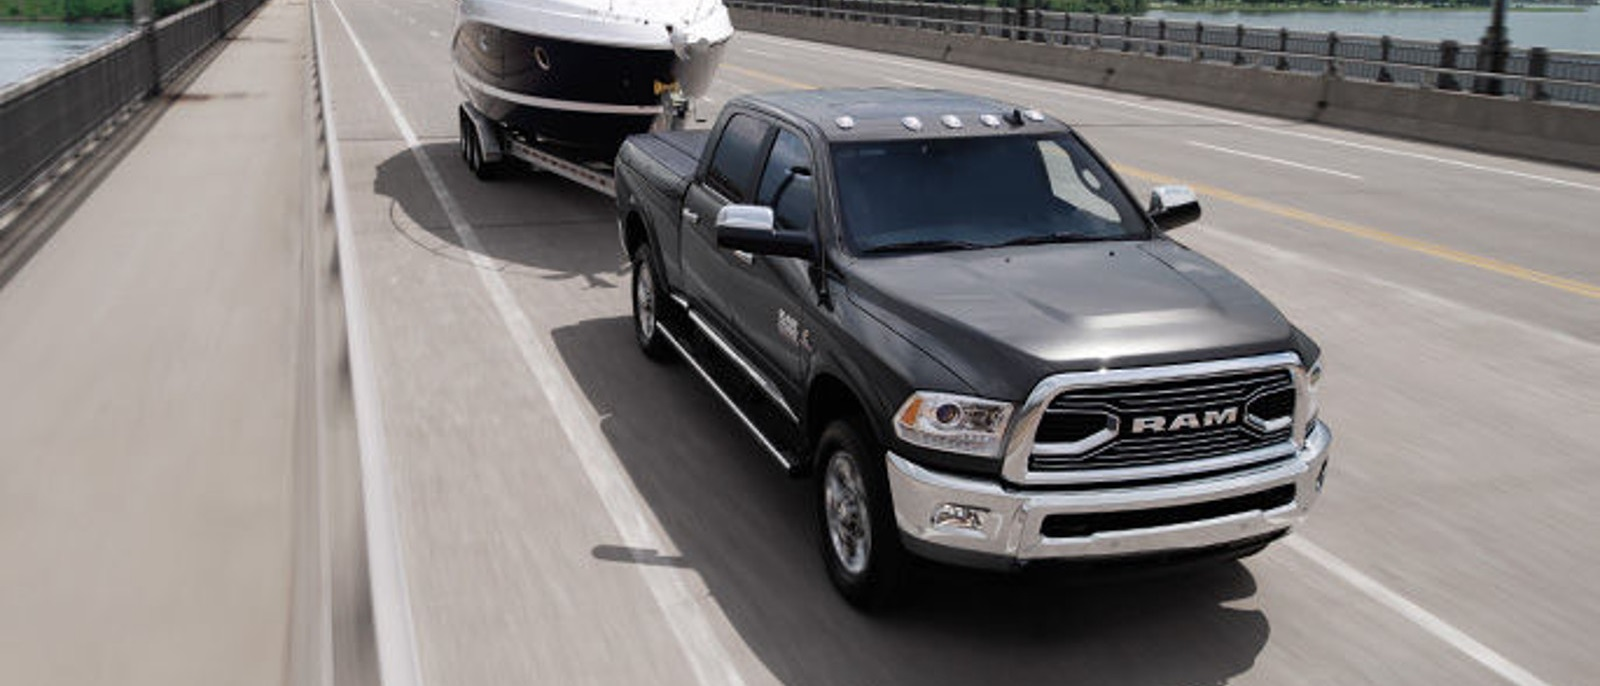 ram2500-exterior-front-grille1